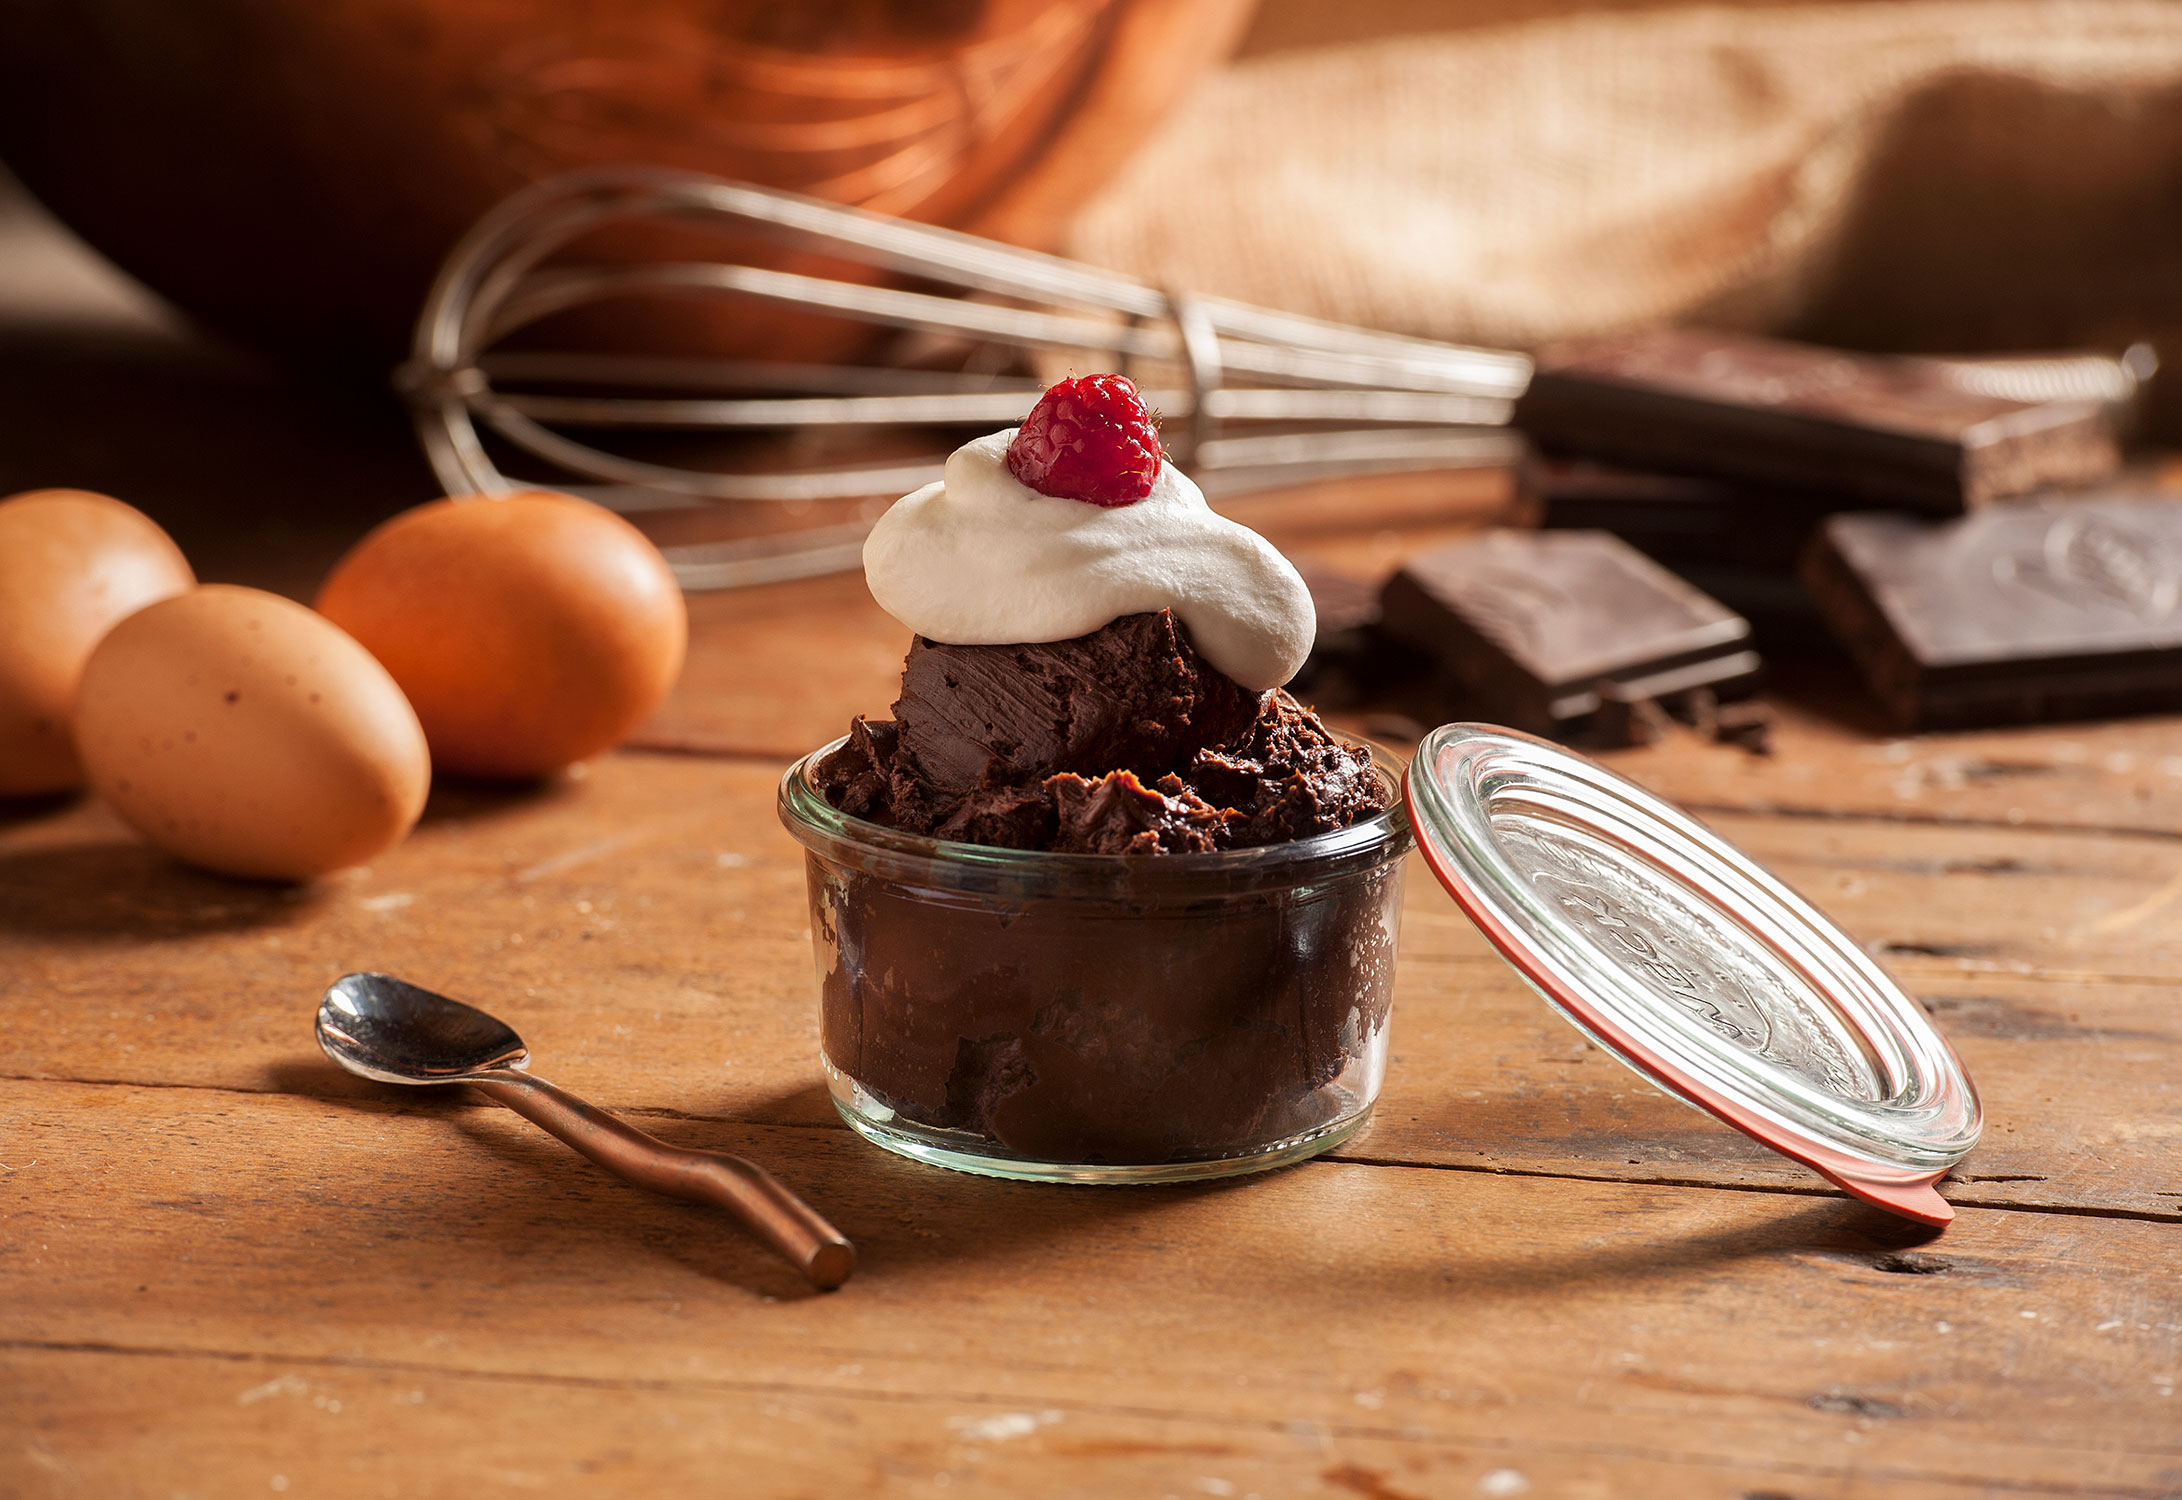 057ChocolateDessertDish